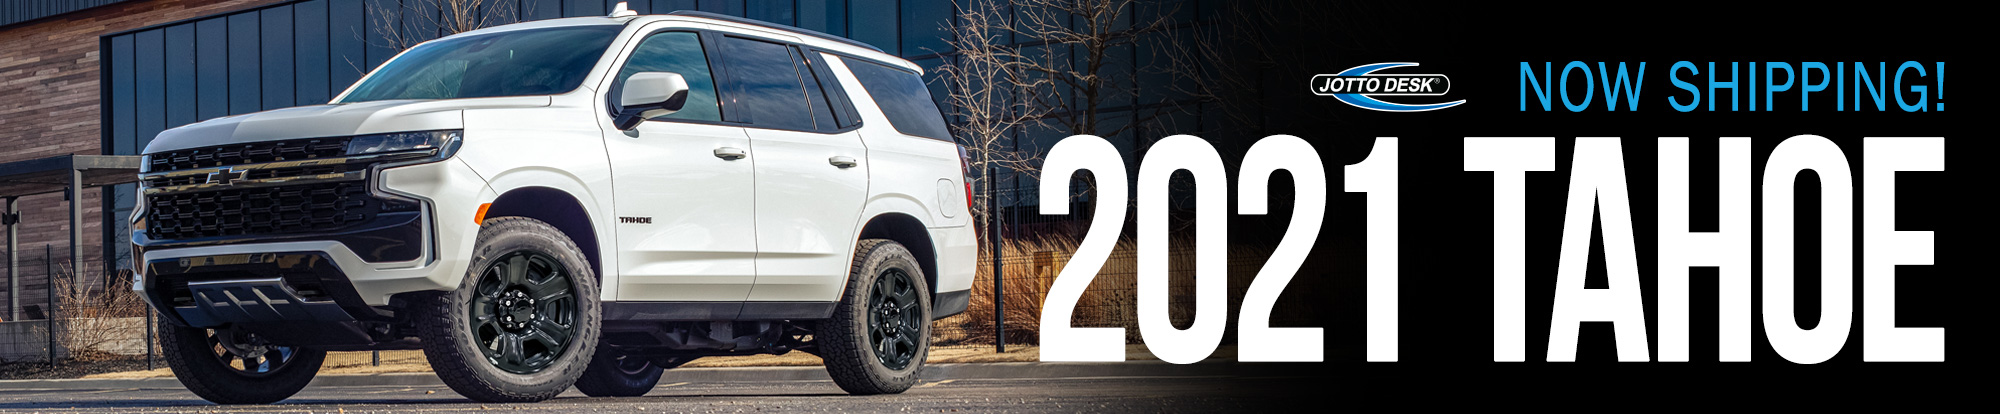 2021 Chevy Tahoe accessories are now shipping!